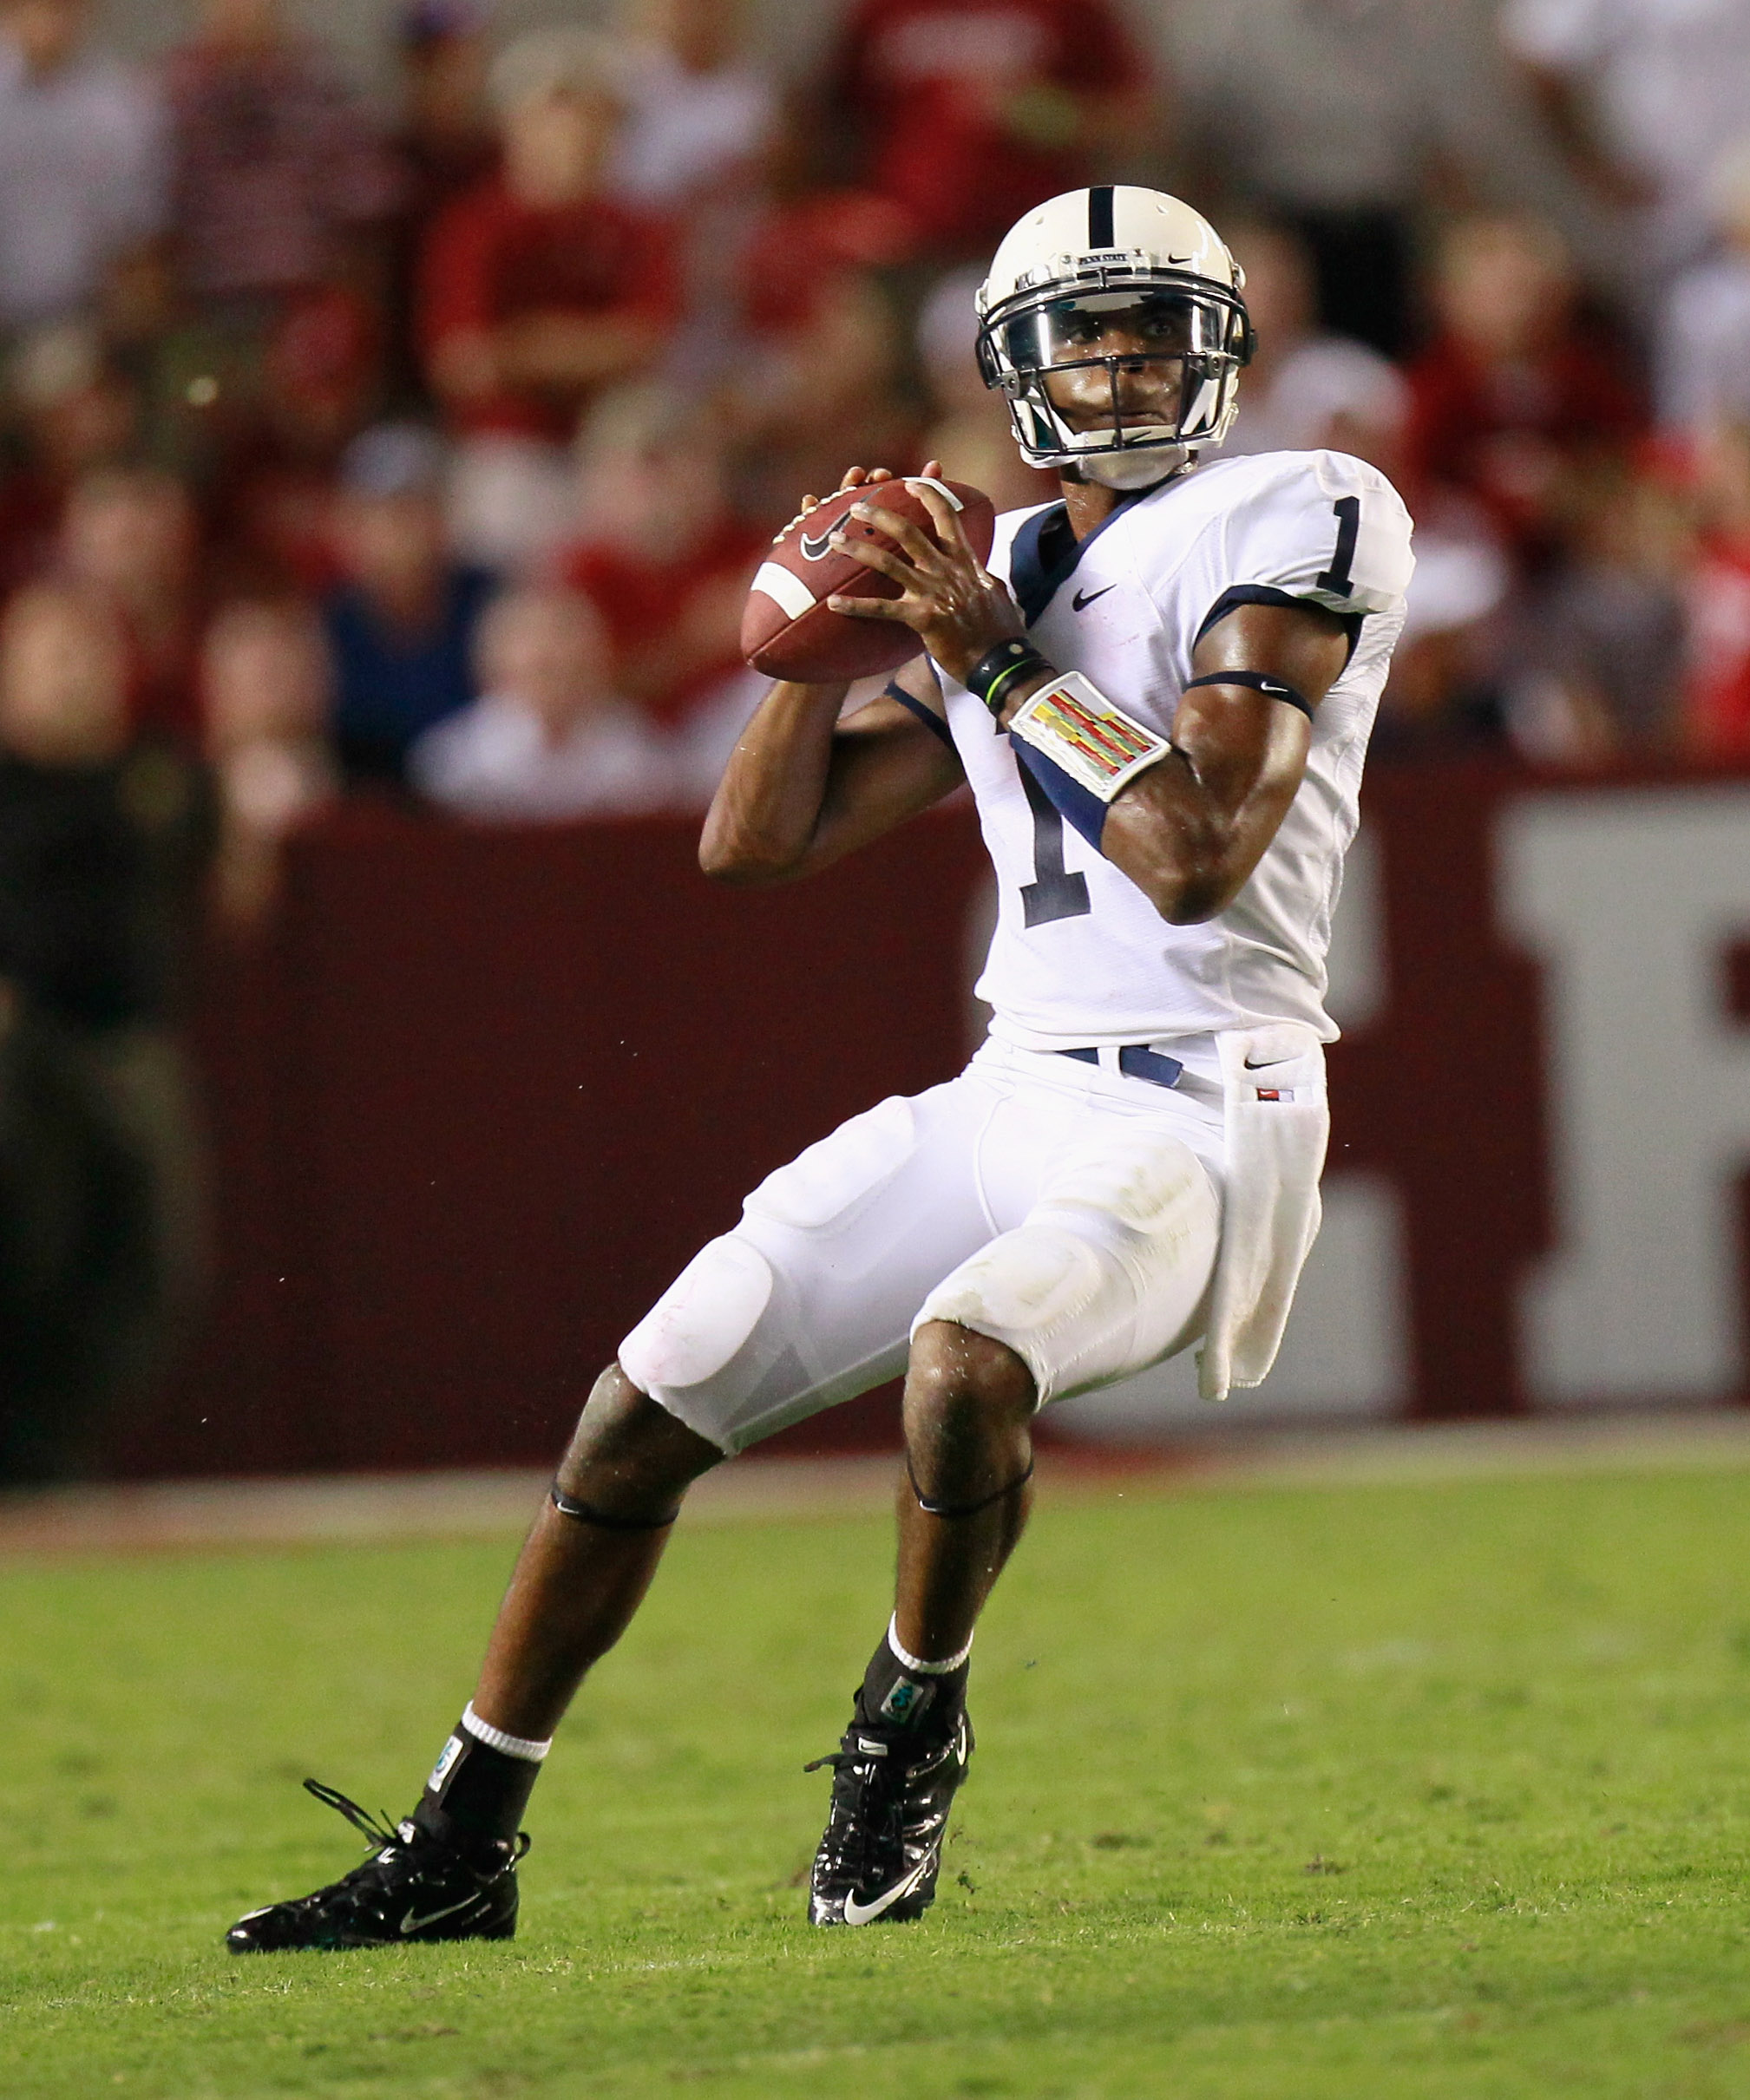 True freshman Bolden beat out two sophomores and another good freshman QB.